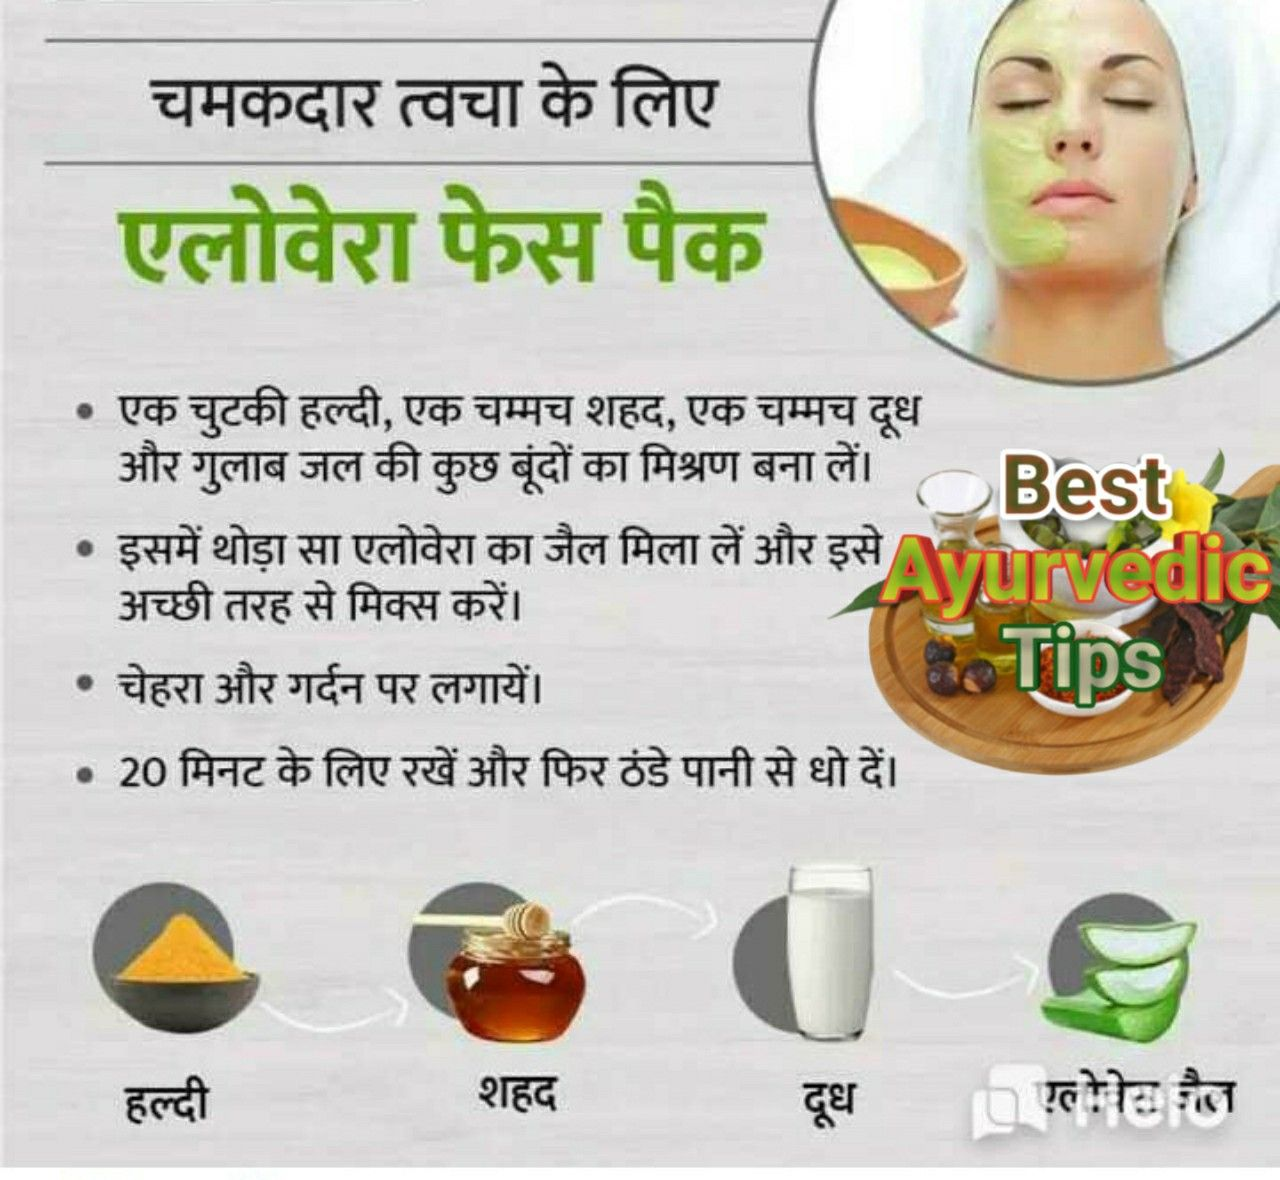 Best Ayurvedic Tips you Tube channel  Beauty skin care routine